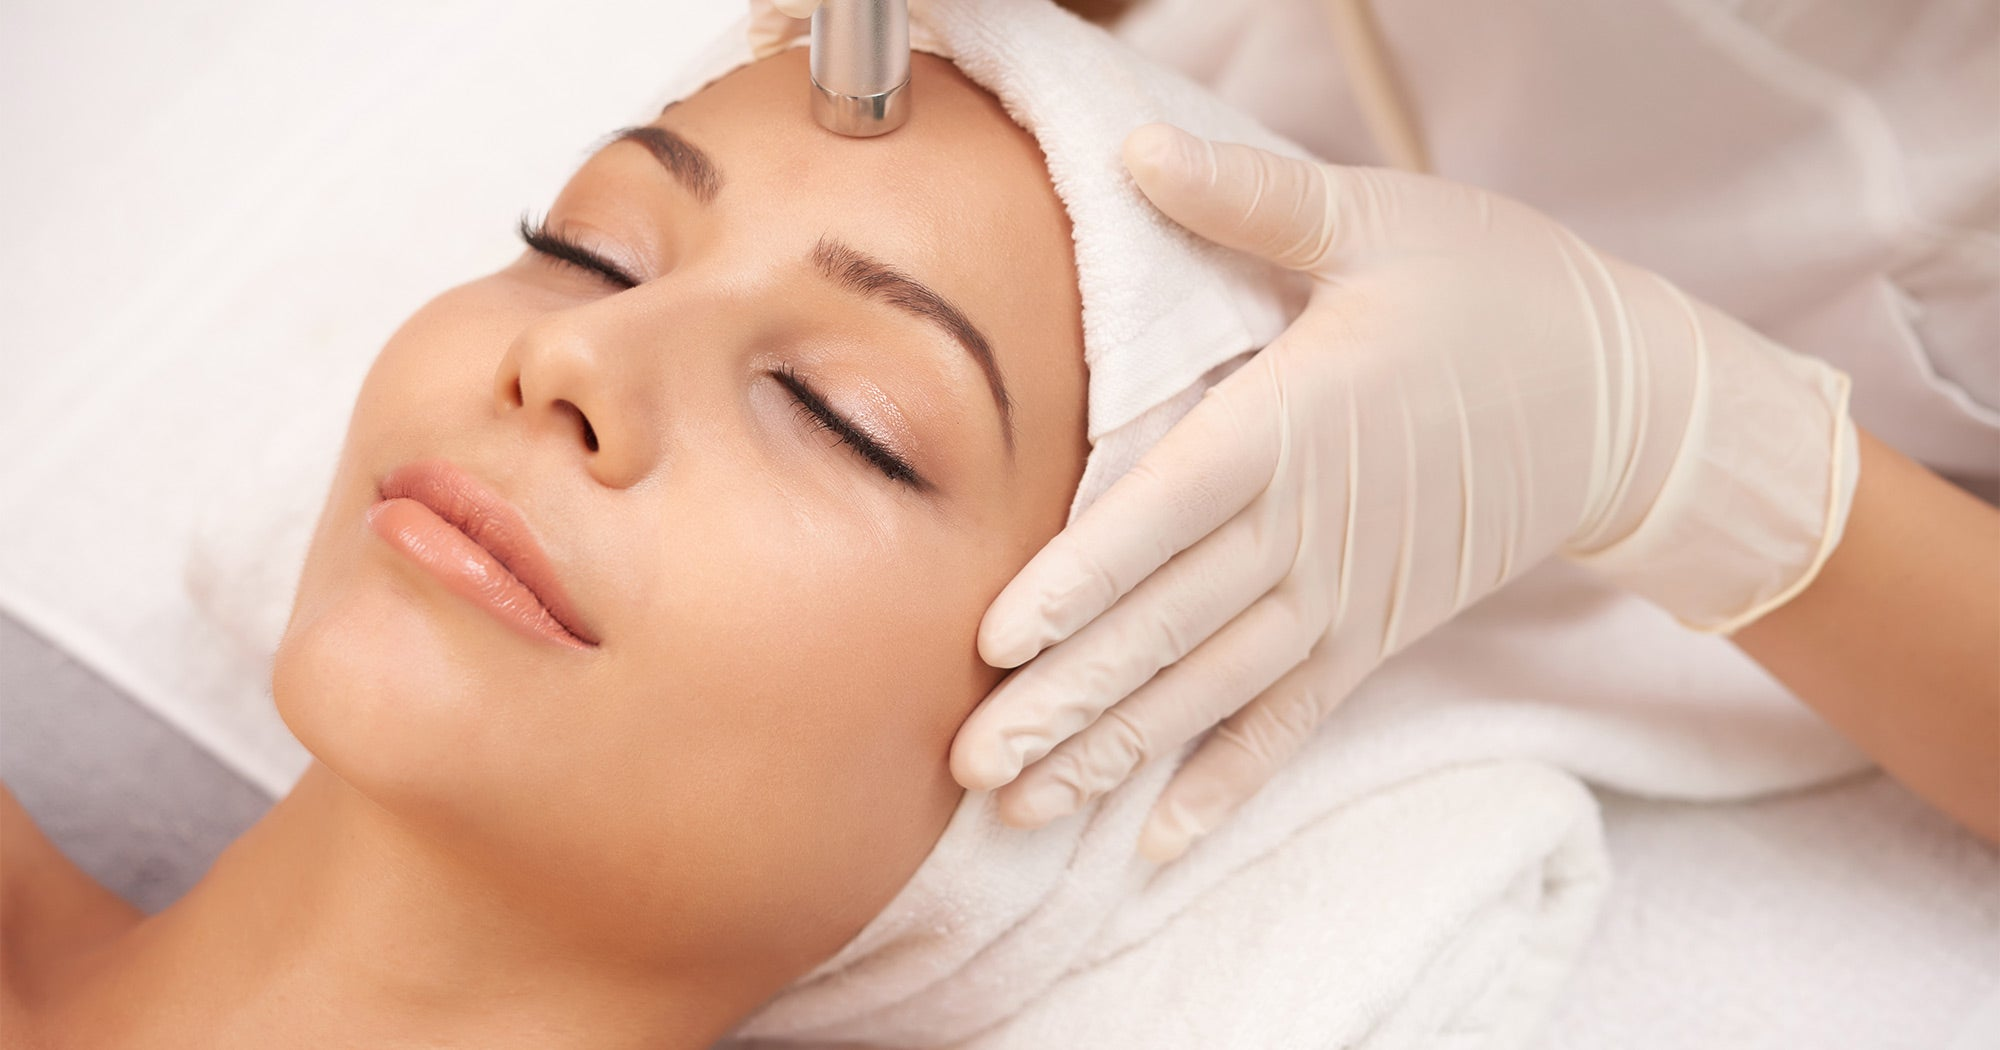 Beauty Procedure training with model and device